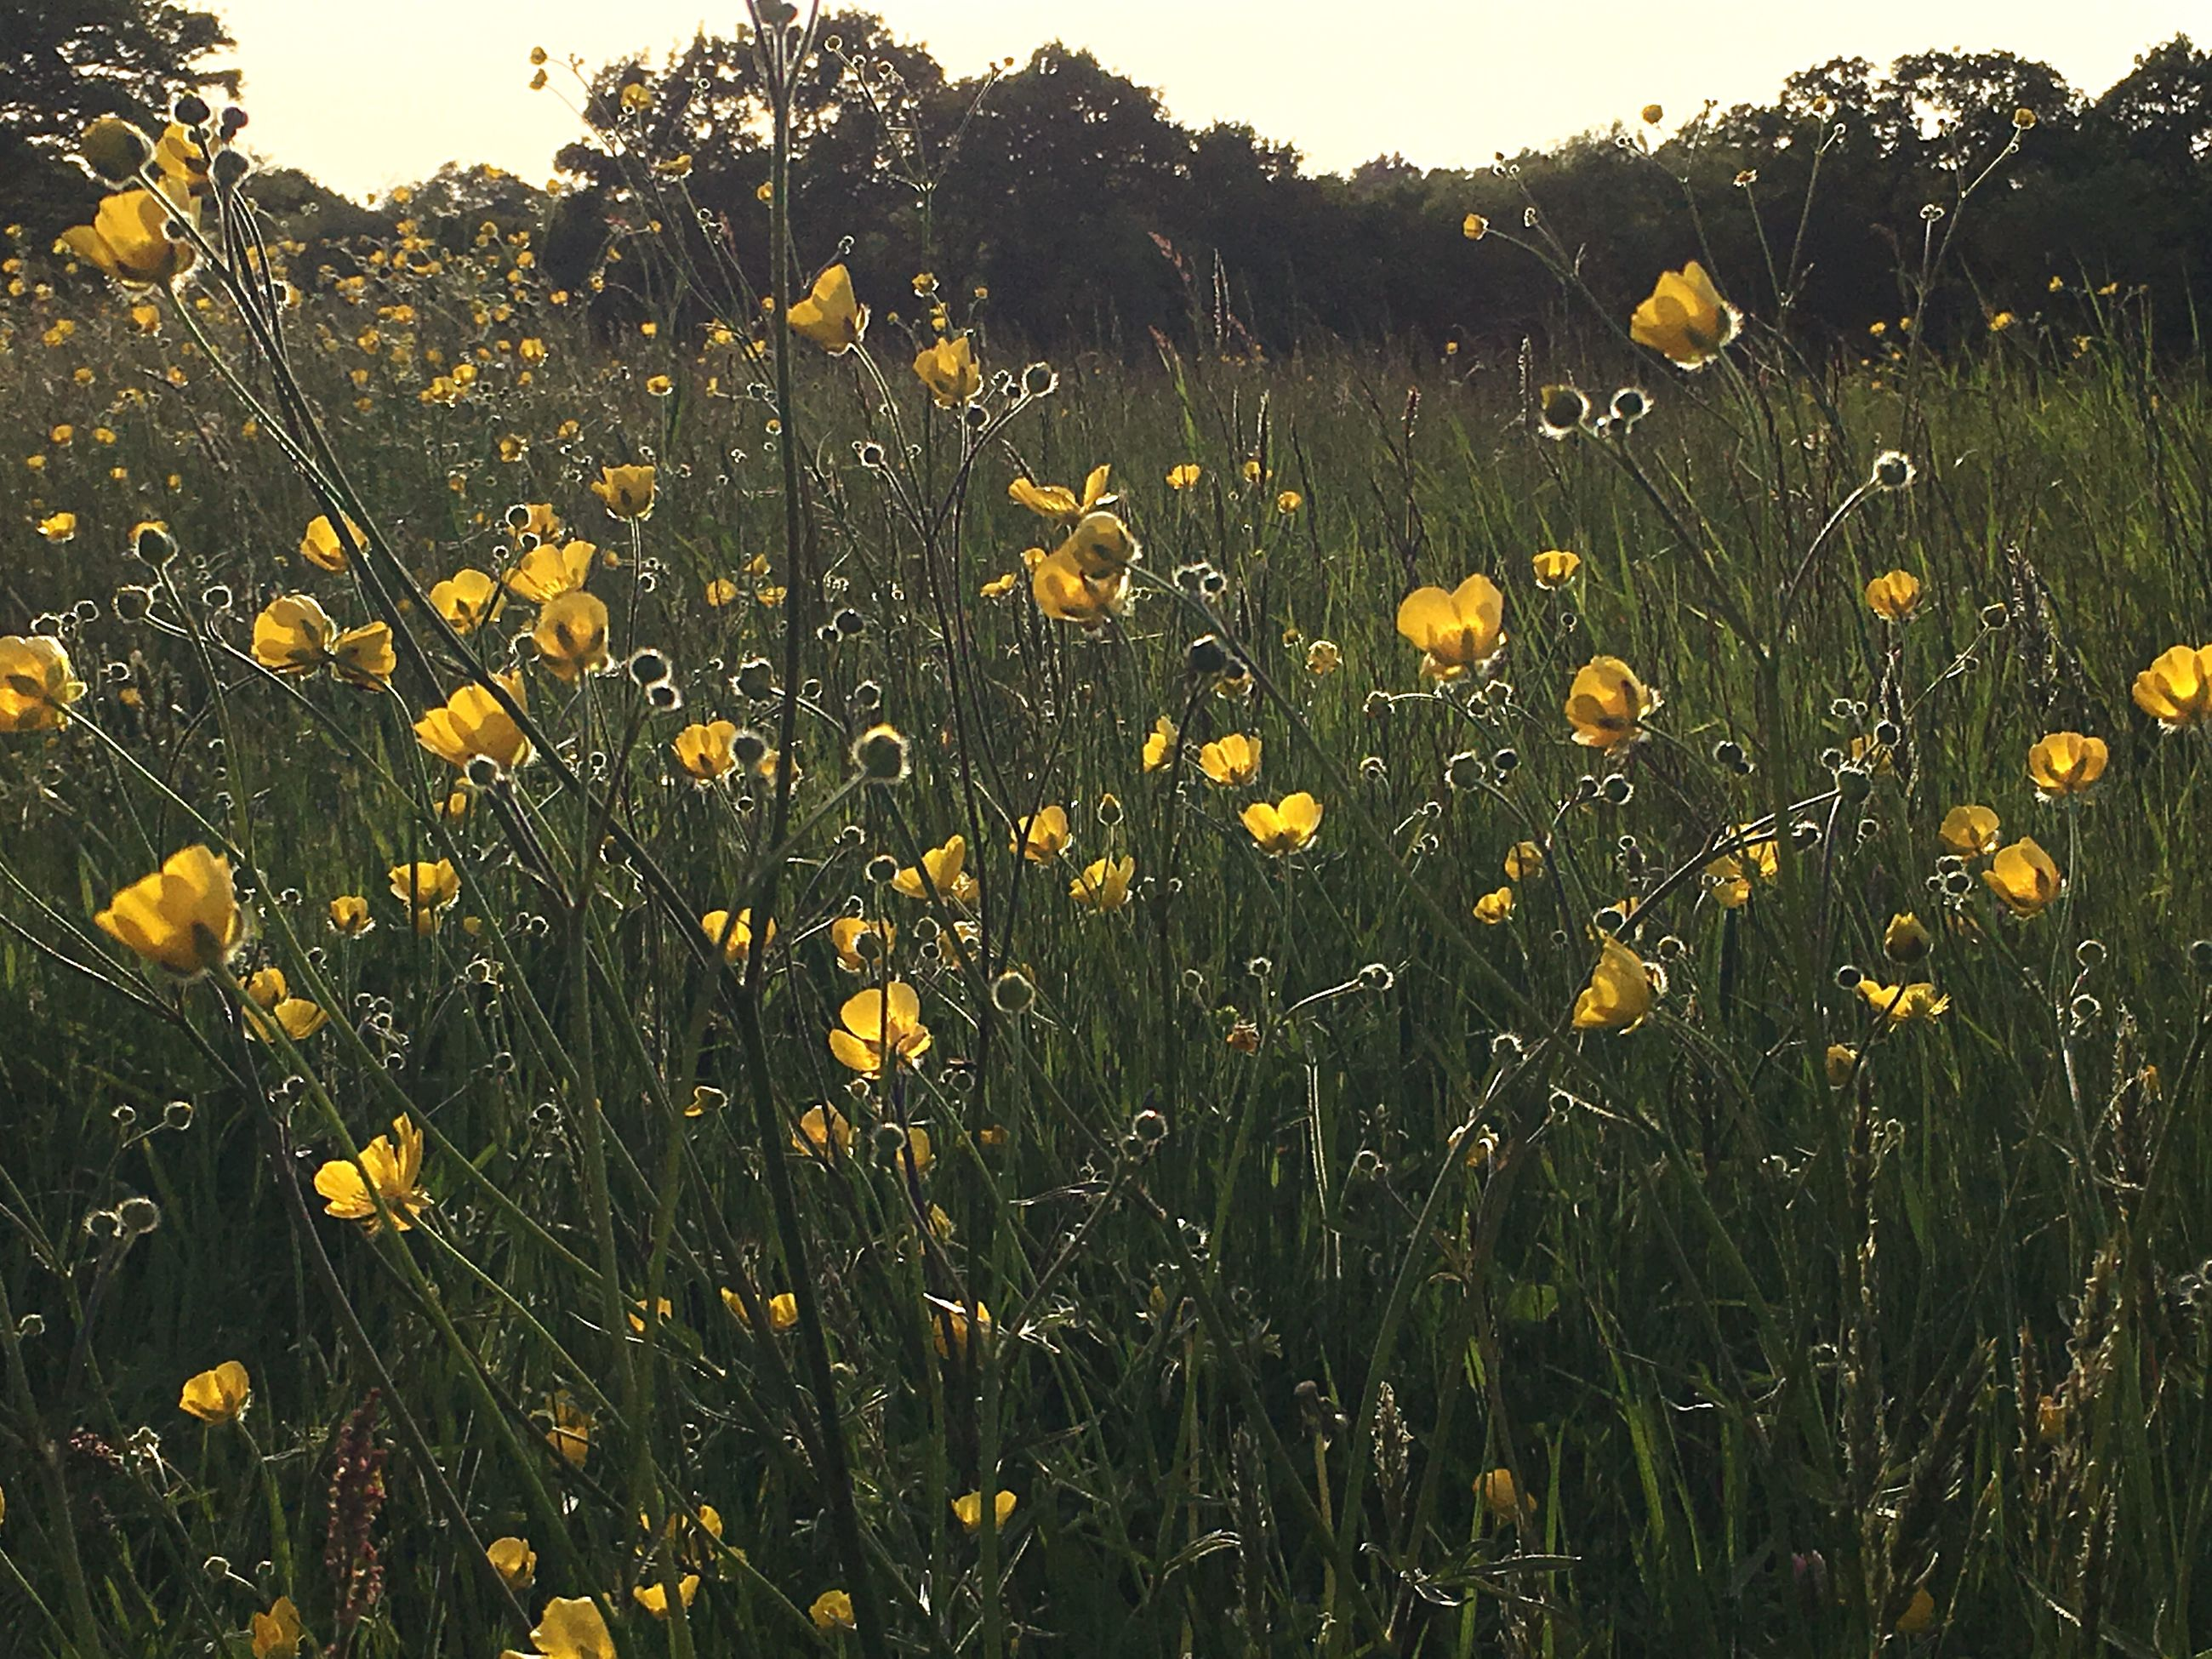 plant, growth, field, yellow, flower, flowering plant, land, beauty in nature, fragility, vulnerability, freshness, nature, no people, landscape, tranquility, flower head, sky, day, agriculture, close-up, outdoors, spring, flowerbed